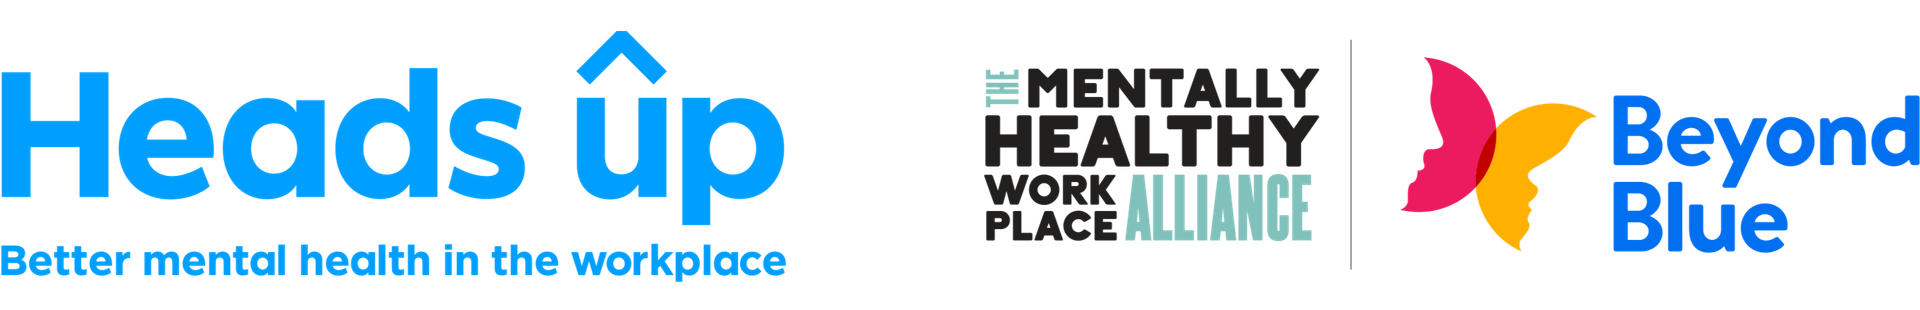 Heads up: Better mental health in the workplace